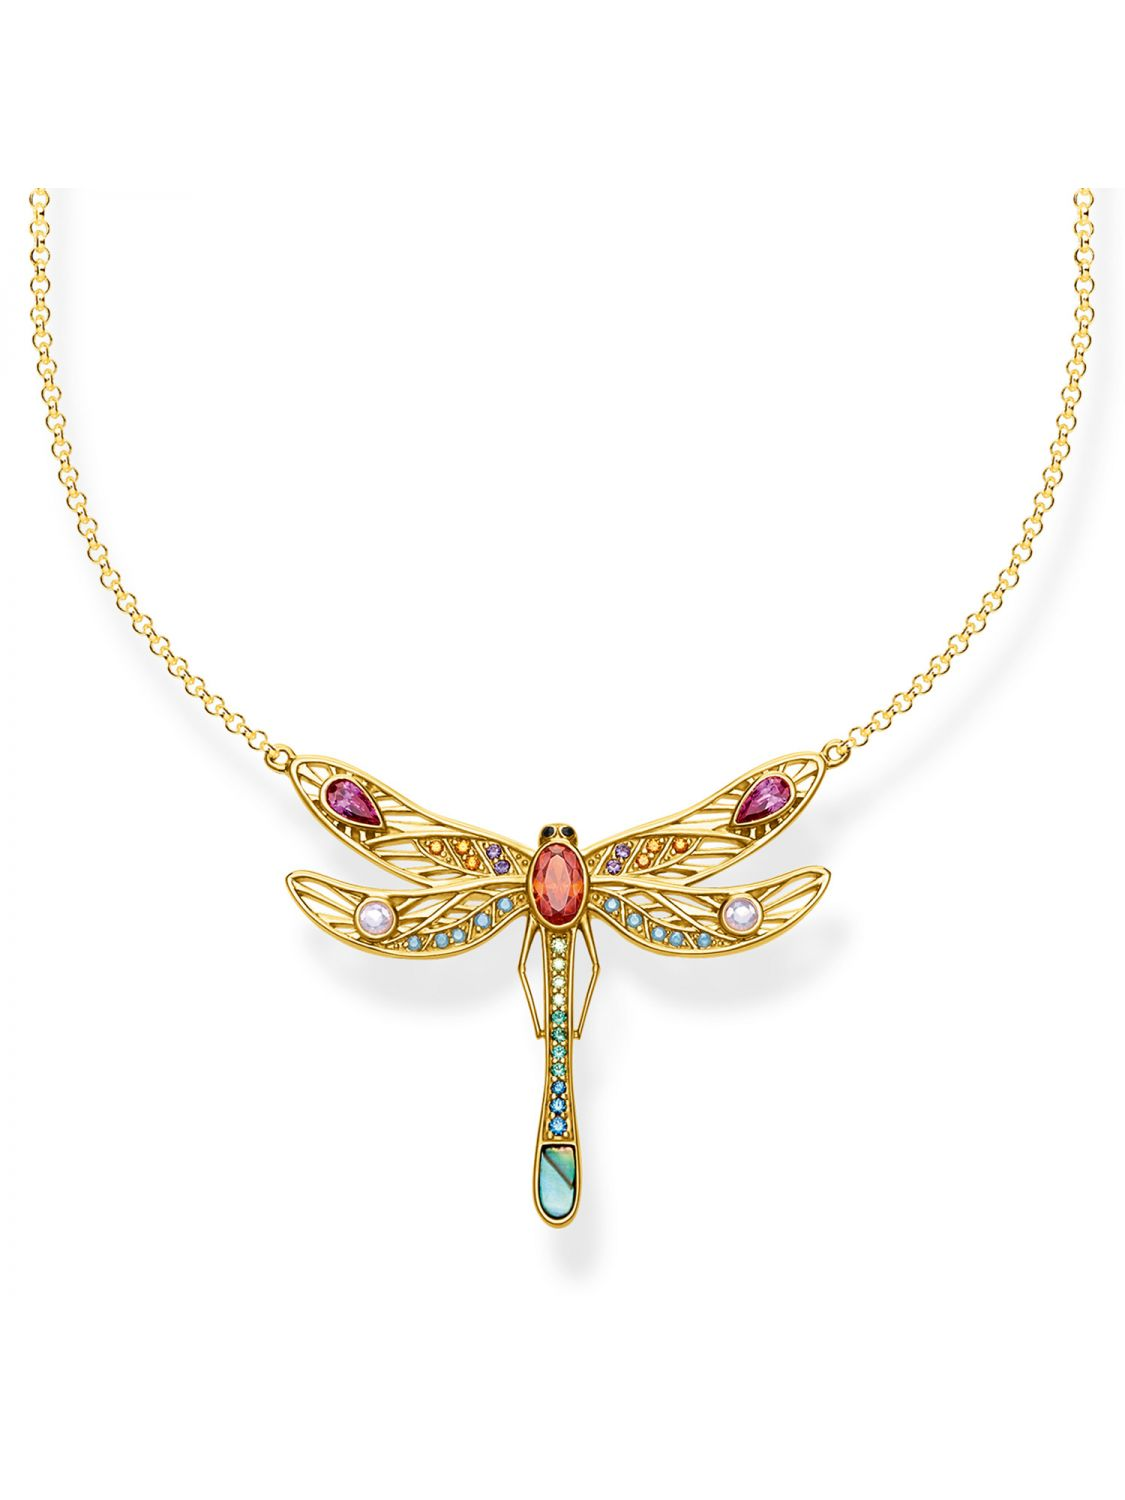 5080394bd91 Thomas Sabo KE1838-316-7-L45v Ladies´ Necklace Dragonfly large Image 1 ...